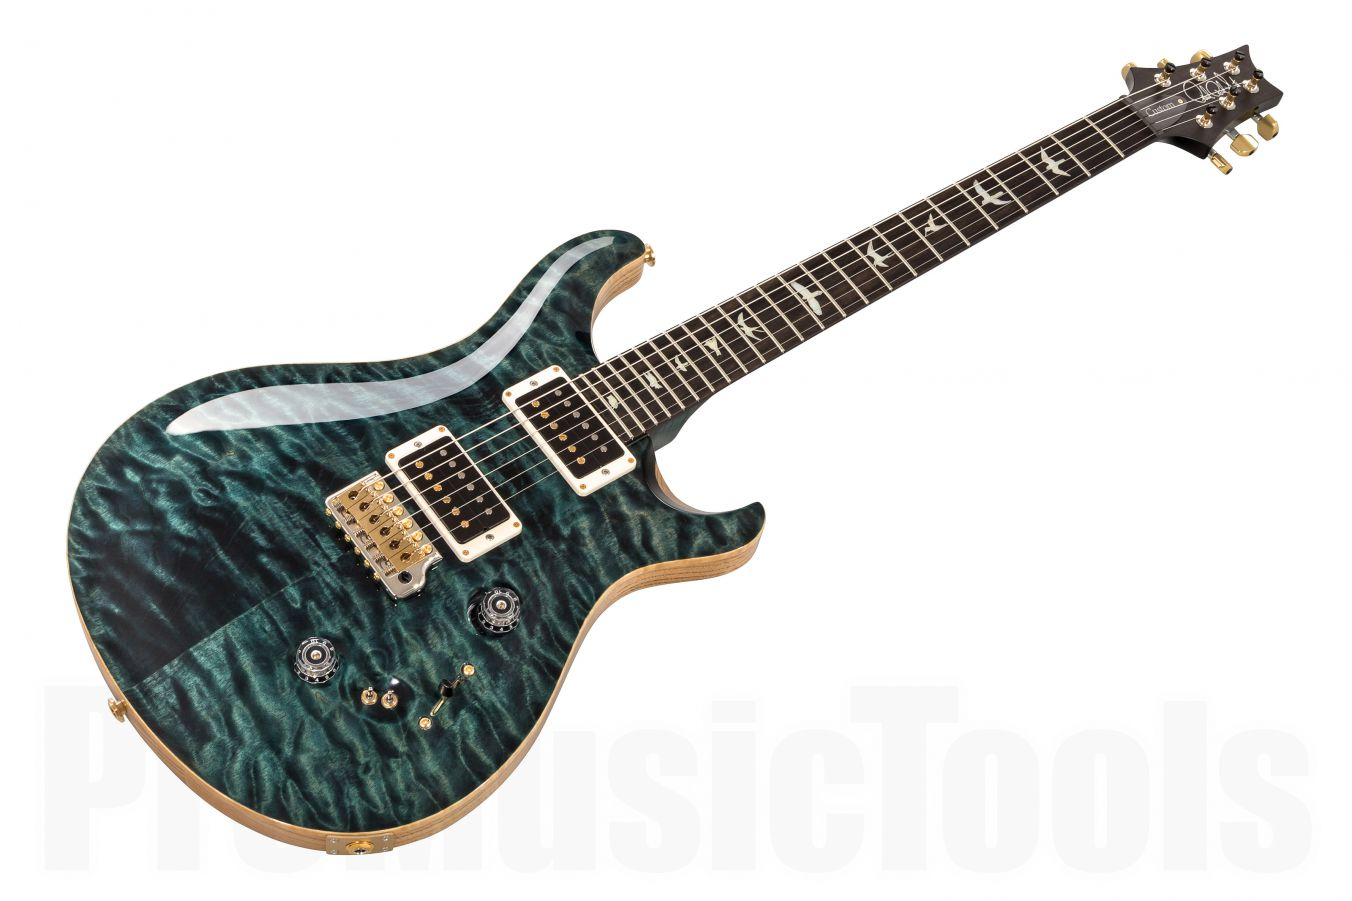 PRS USA Custom 24-08 Experience Wood Library Y9 (ST) - Slate Blue Quilt 10-Top